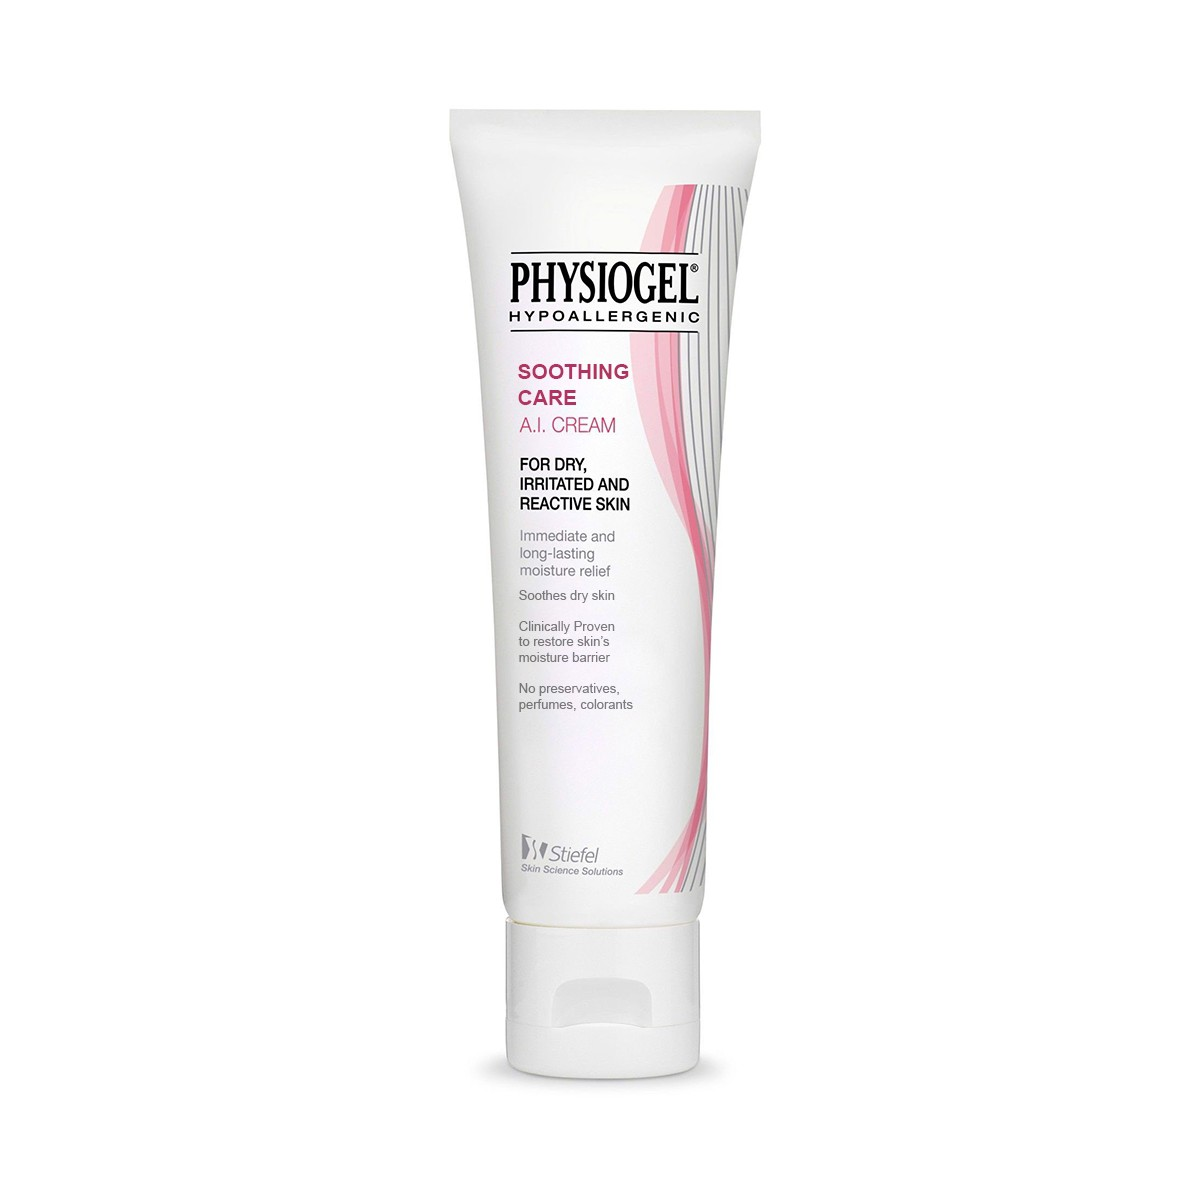 Physiogel Hypoallergenic Soothing Care A.i Cream- Kem dưỡng ẩm